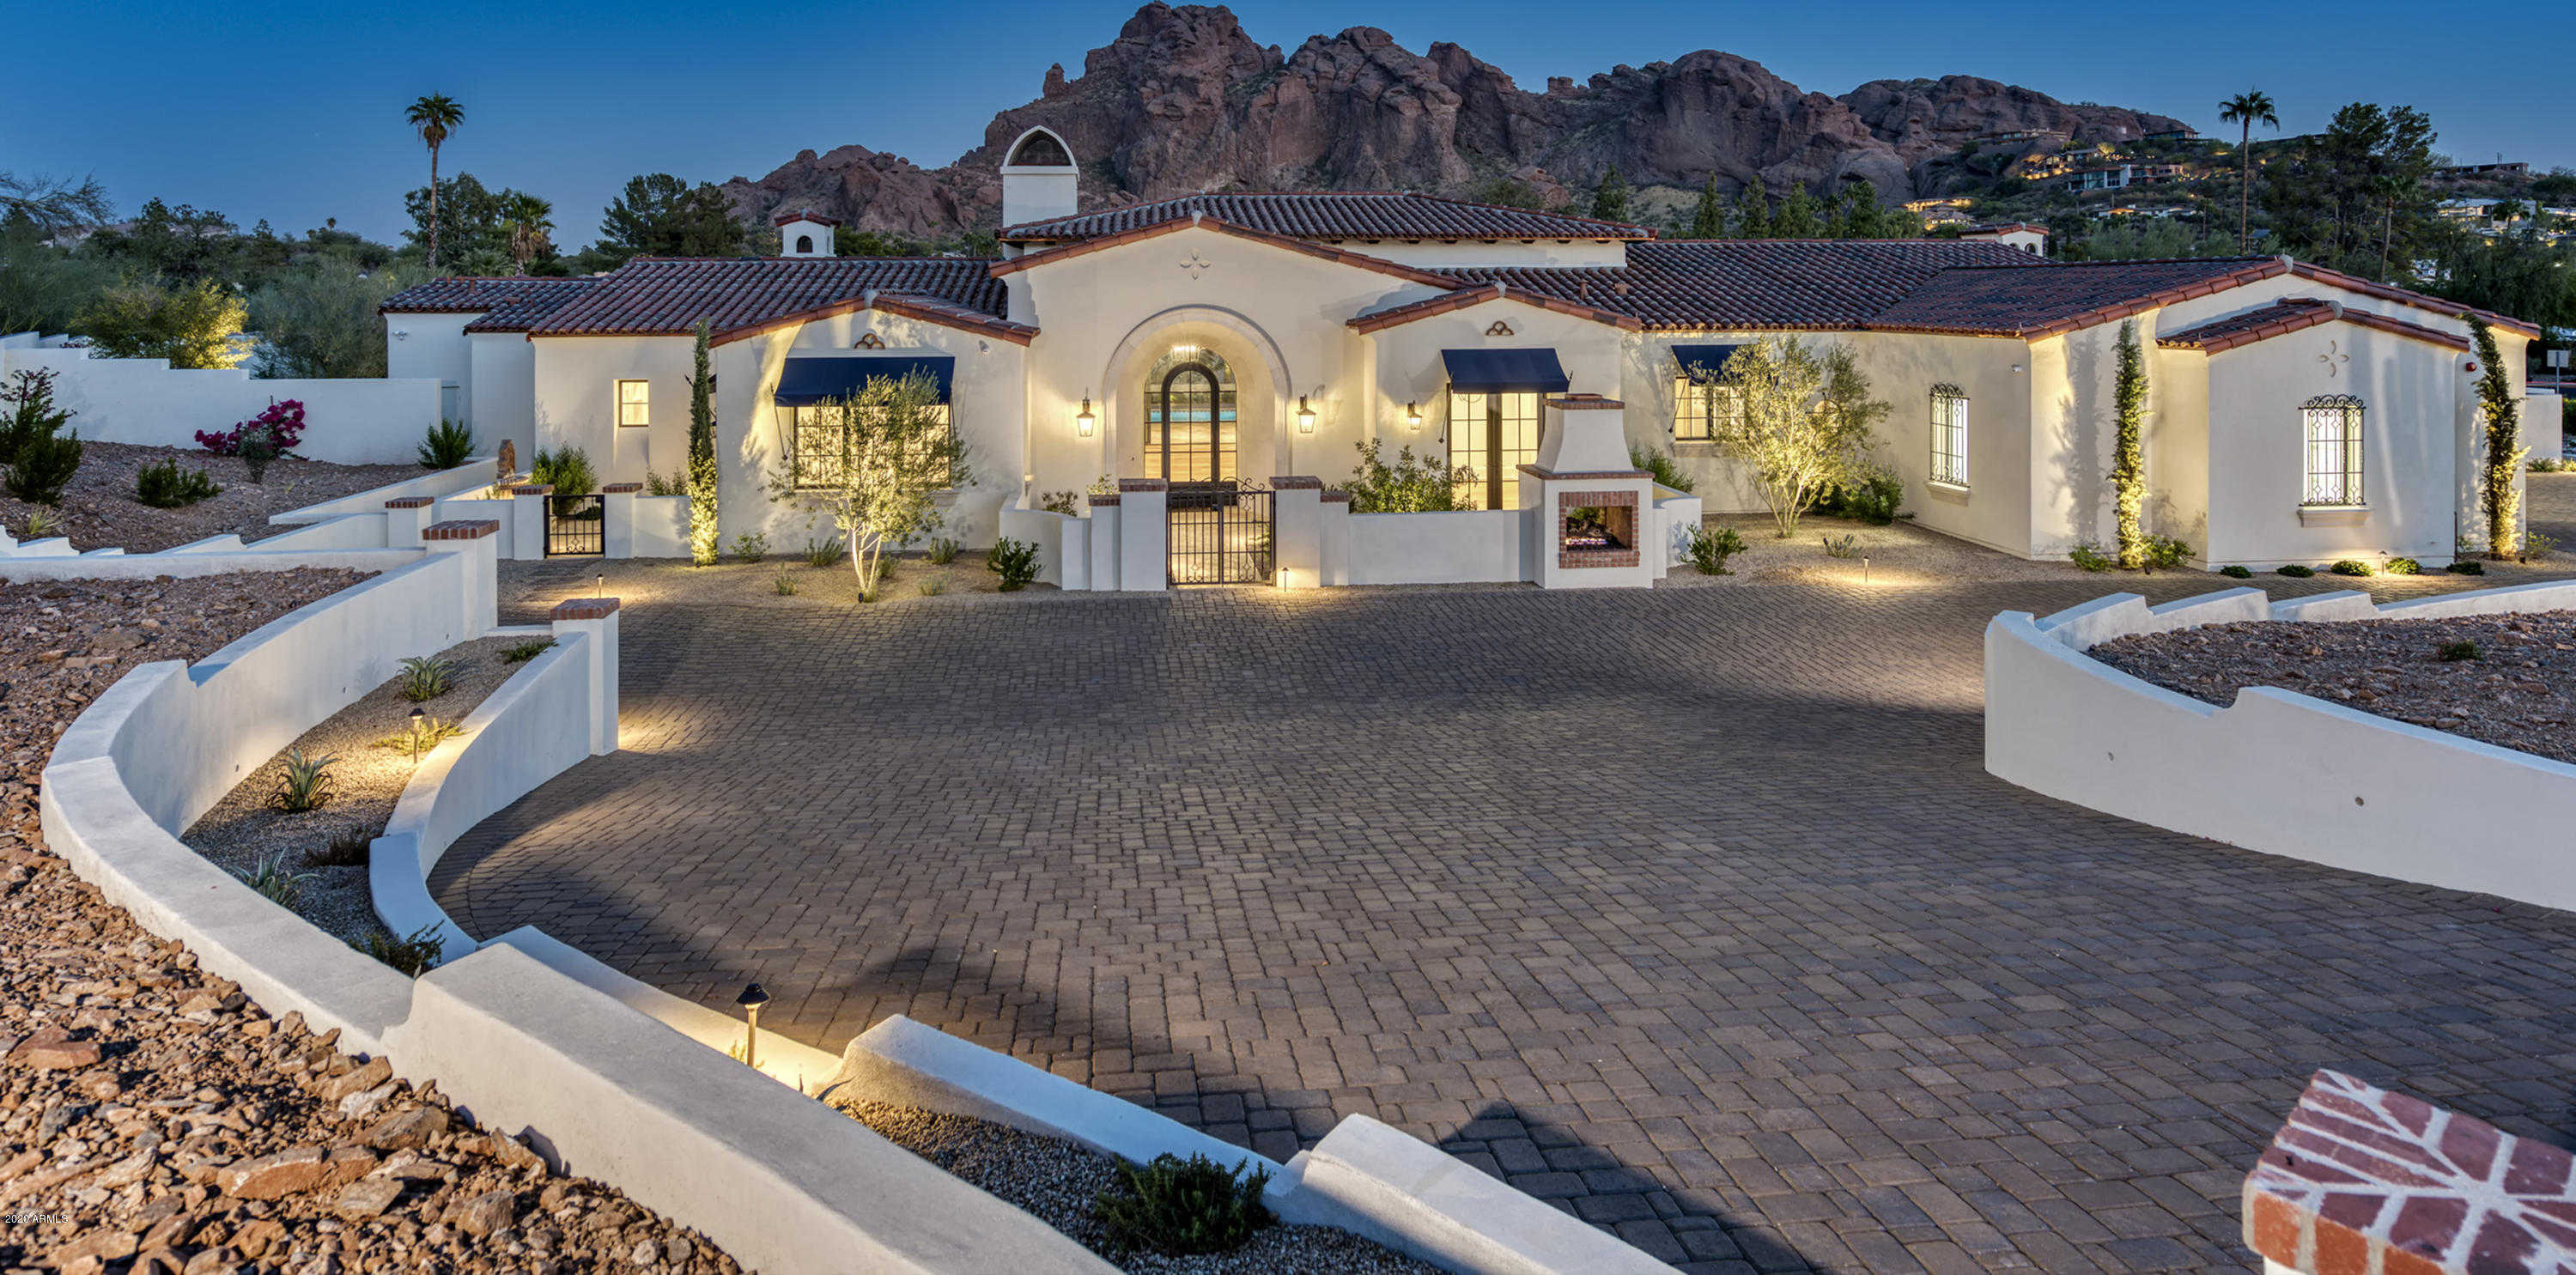 $3,500,000 - 3Br/4Ba - Home for Sale in Camelhead Vista, Paradise Valley